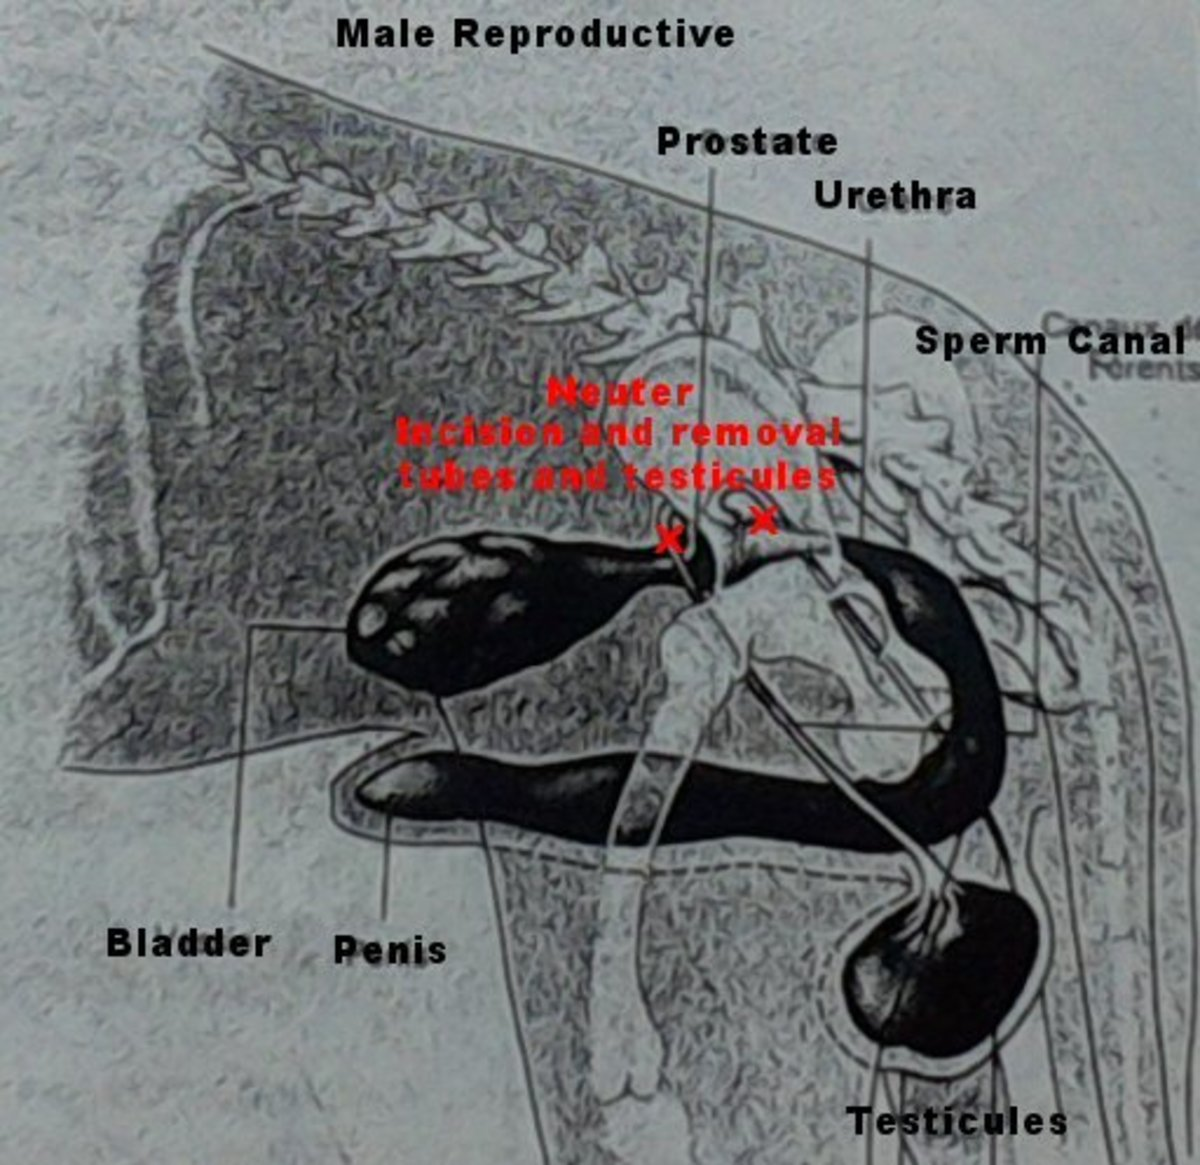 Neutering a cat or dog, they make a small incision at base of penis and pull the ligament to remove each testicle one by one, then cut the ligaments.